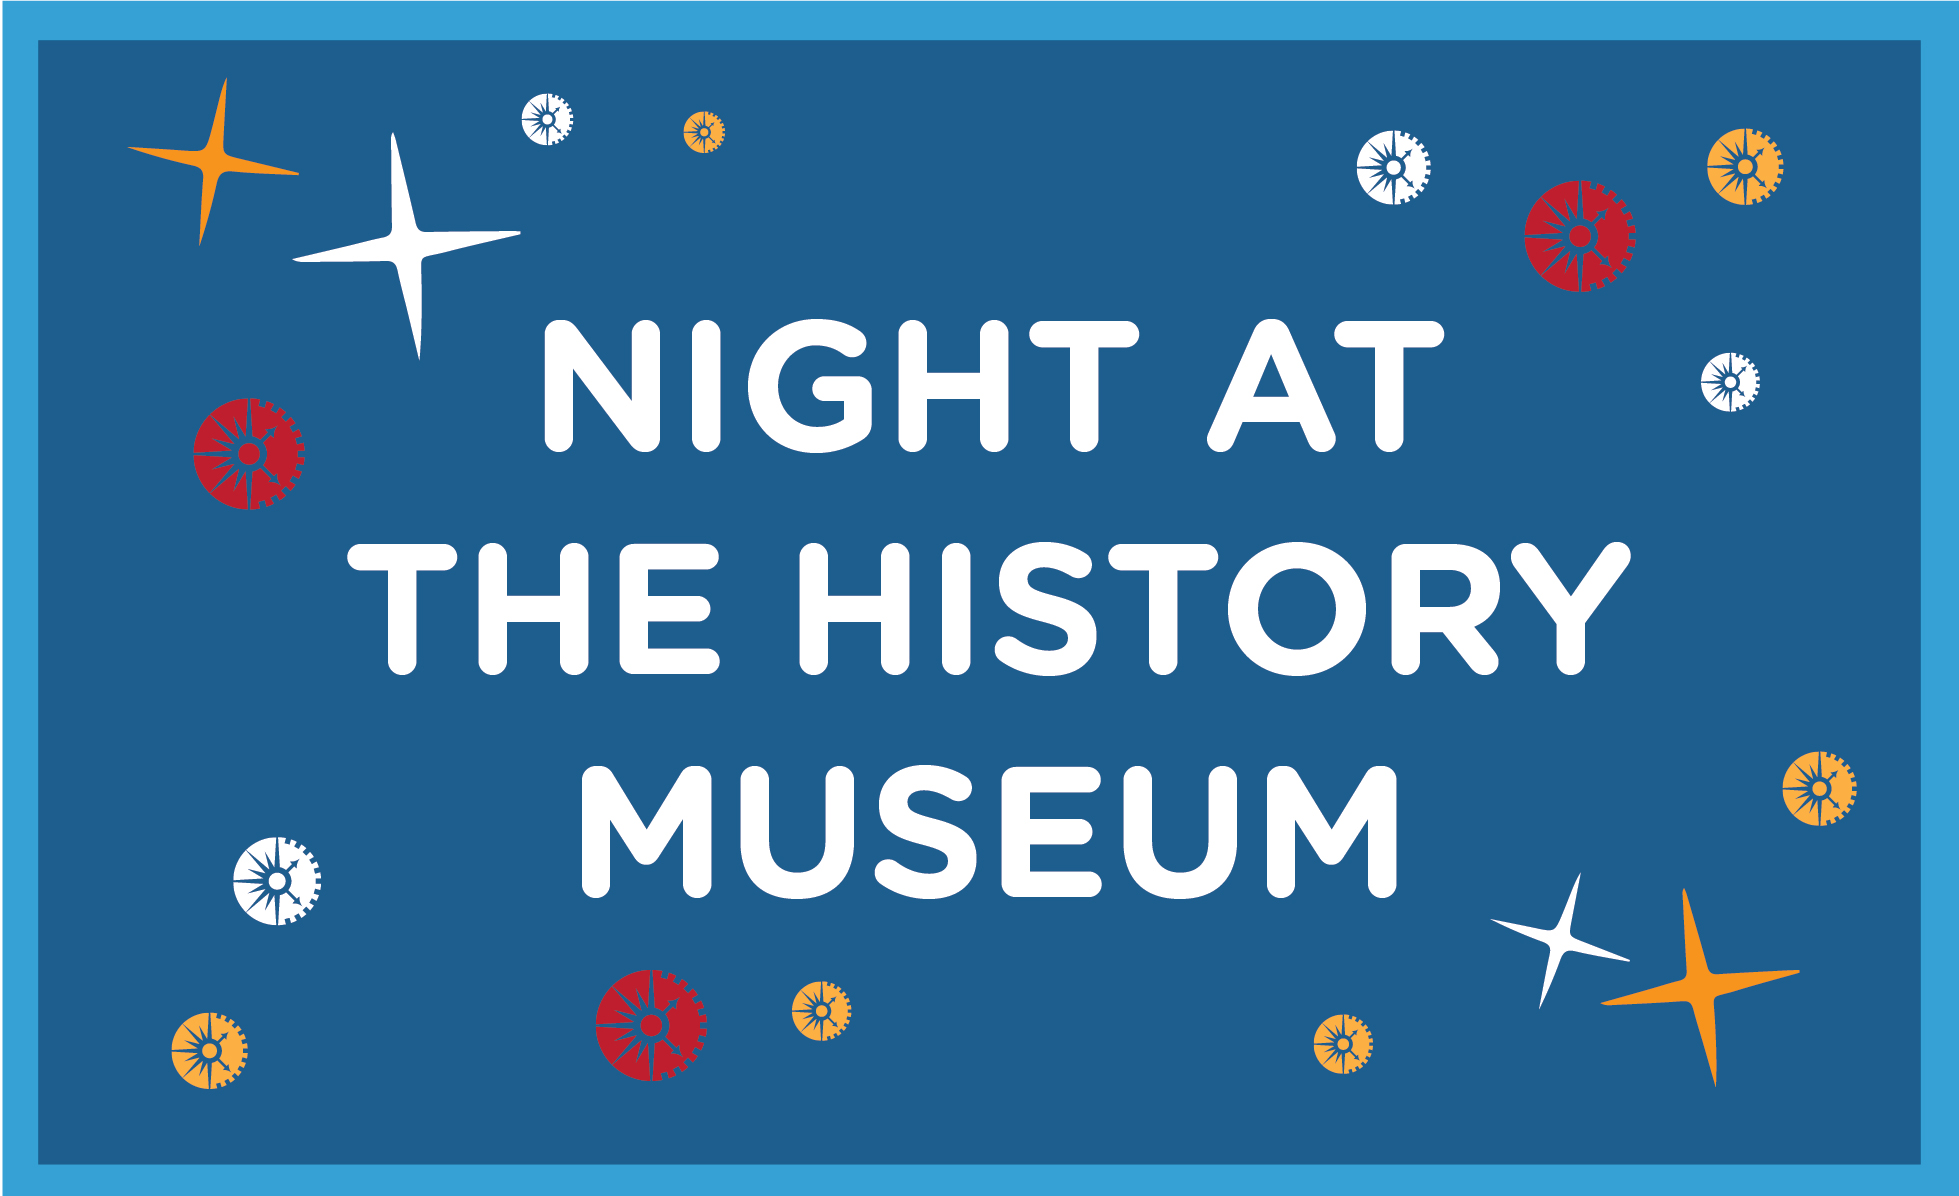 Girl Scout Night at the History Museum